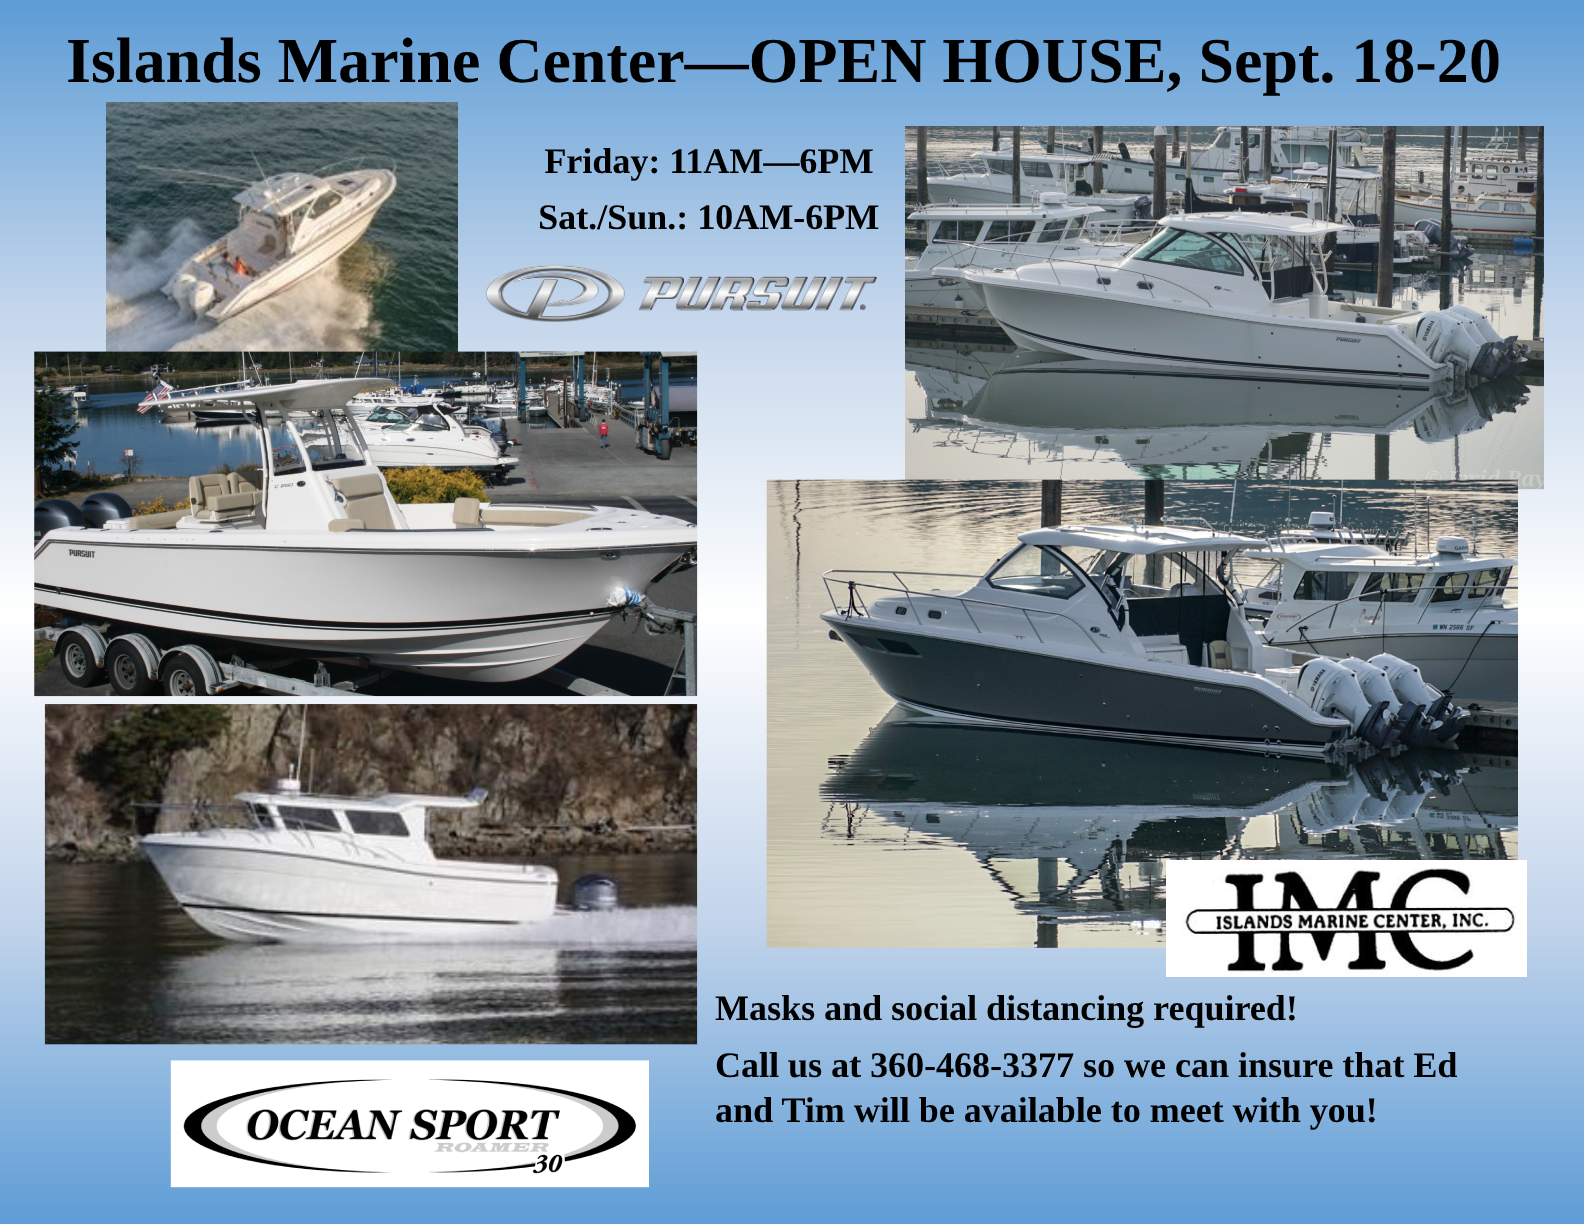 Islands Marine Center—OPEN HOUSE, Sept. 18-20